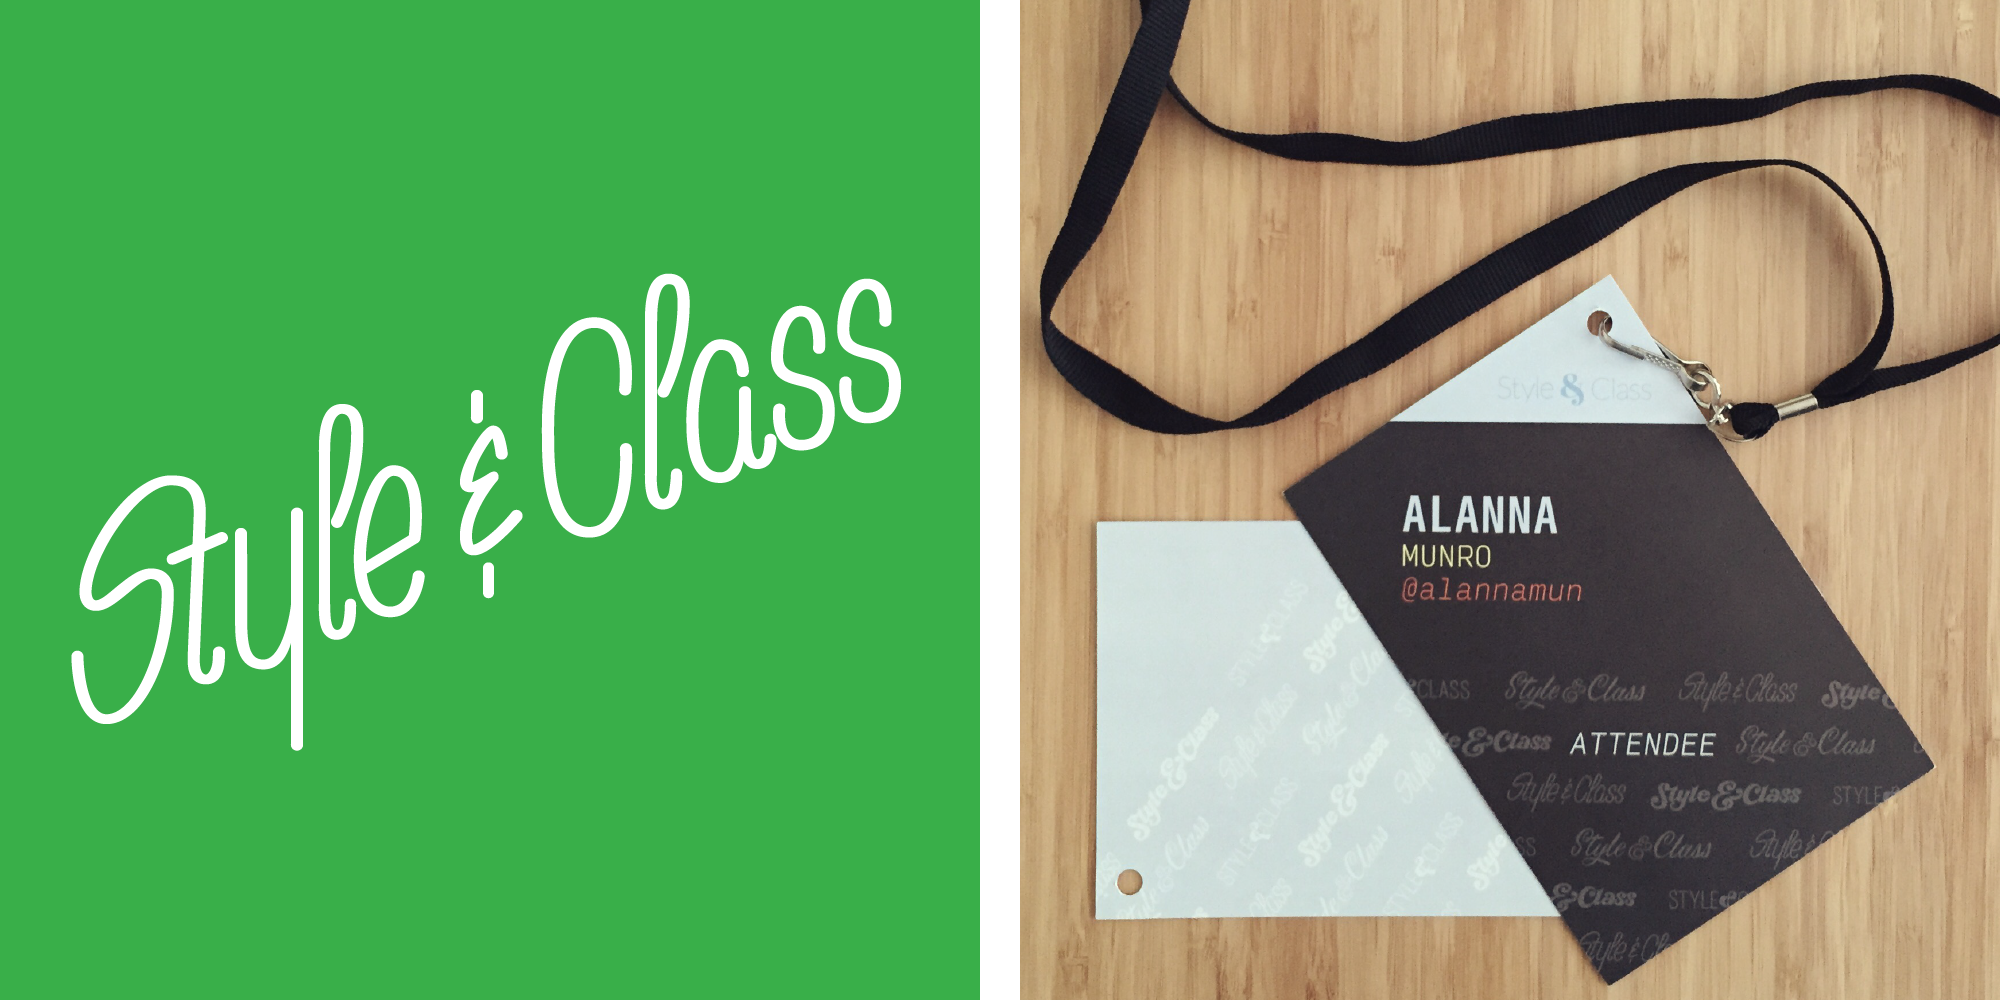 """I collaborated with some of my super talented colleagues, we each lettered """"Style & Class"""" and put themtogether as apattern for the  Style & Class  conference materials."""